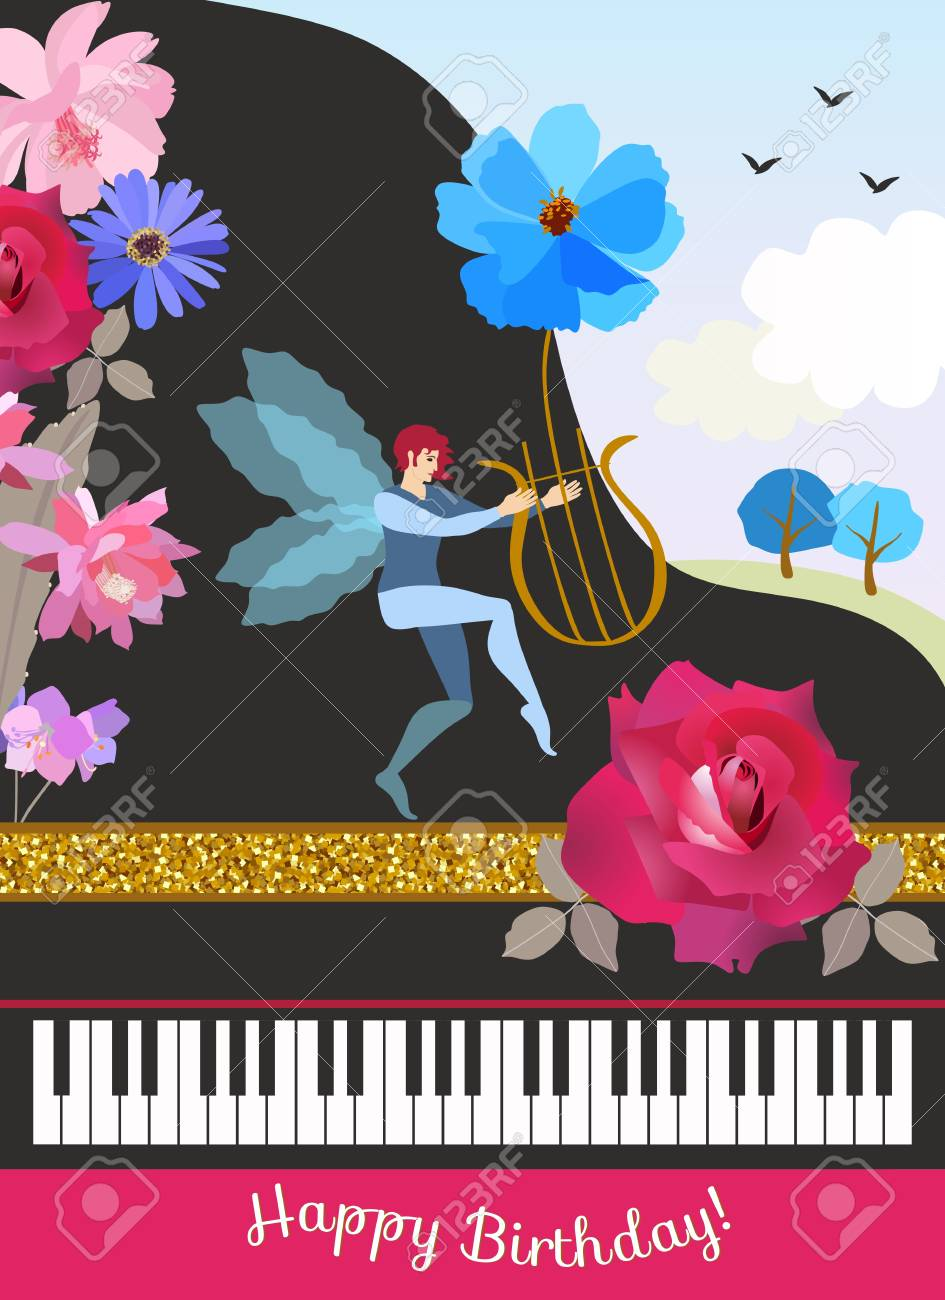 Happy Birthday Greeting Card In Vintage Style Black Grand Piano